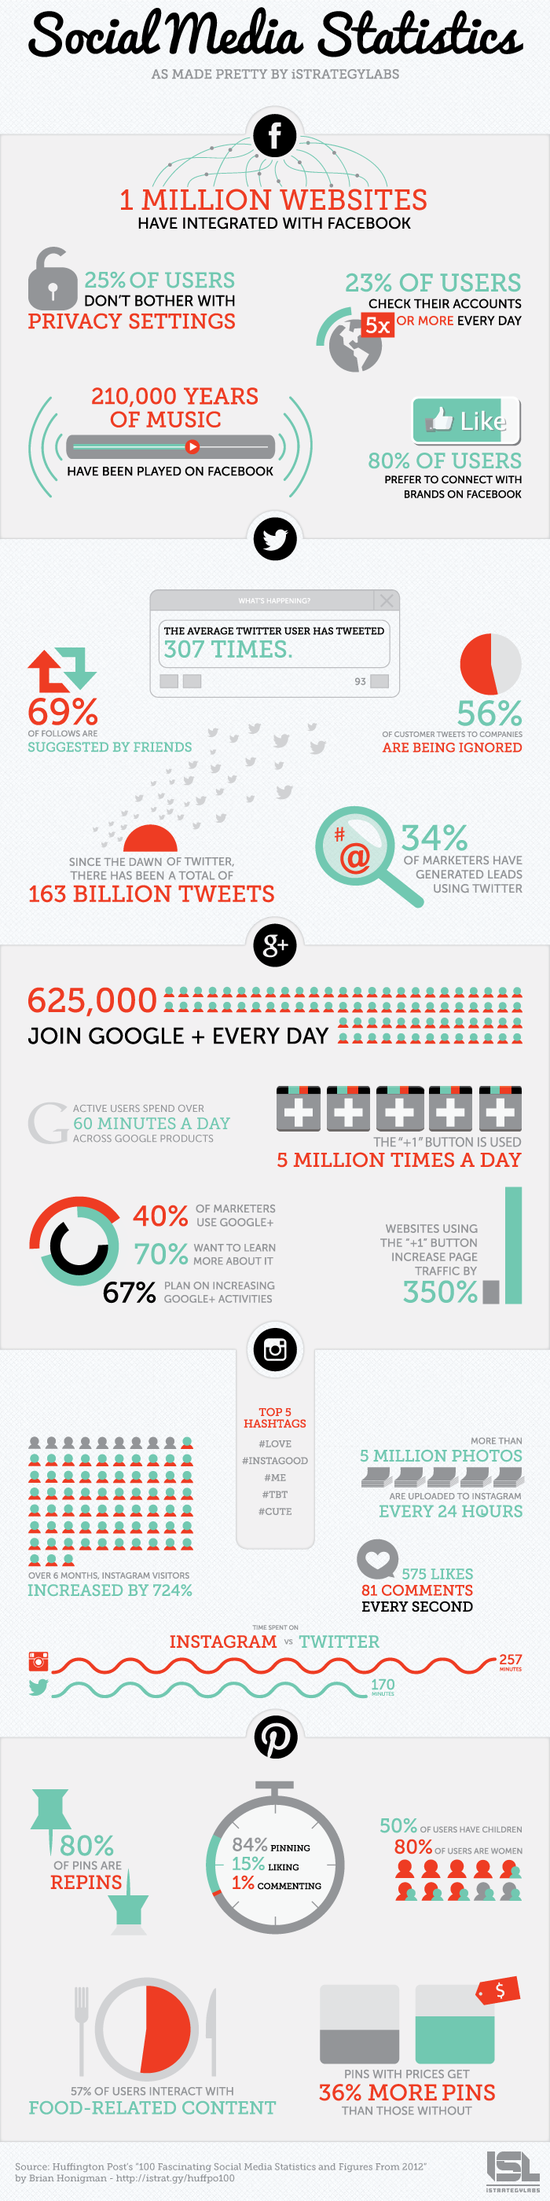 techieapps-social-media-sites-stats-2012--infographics